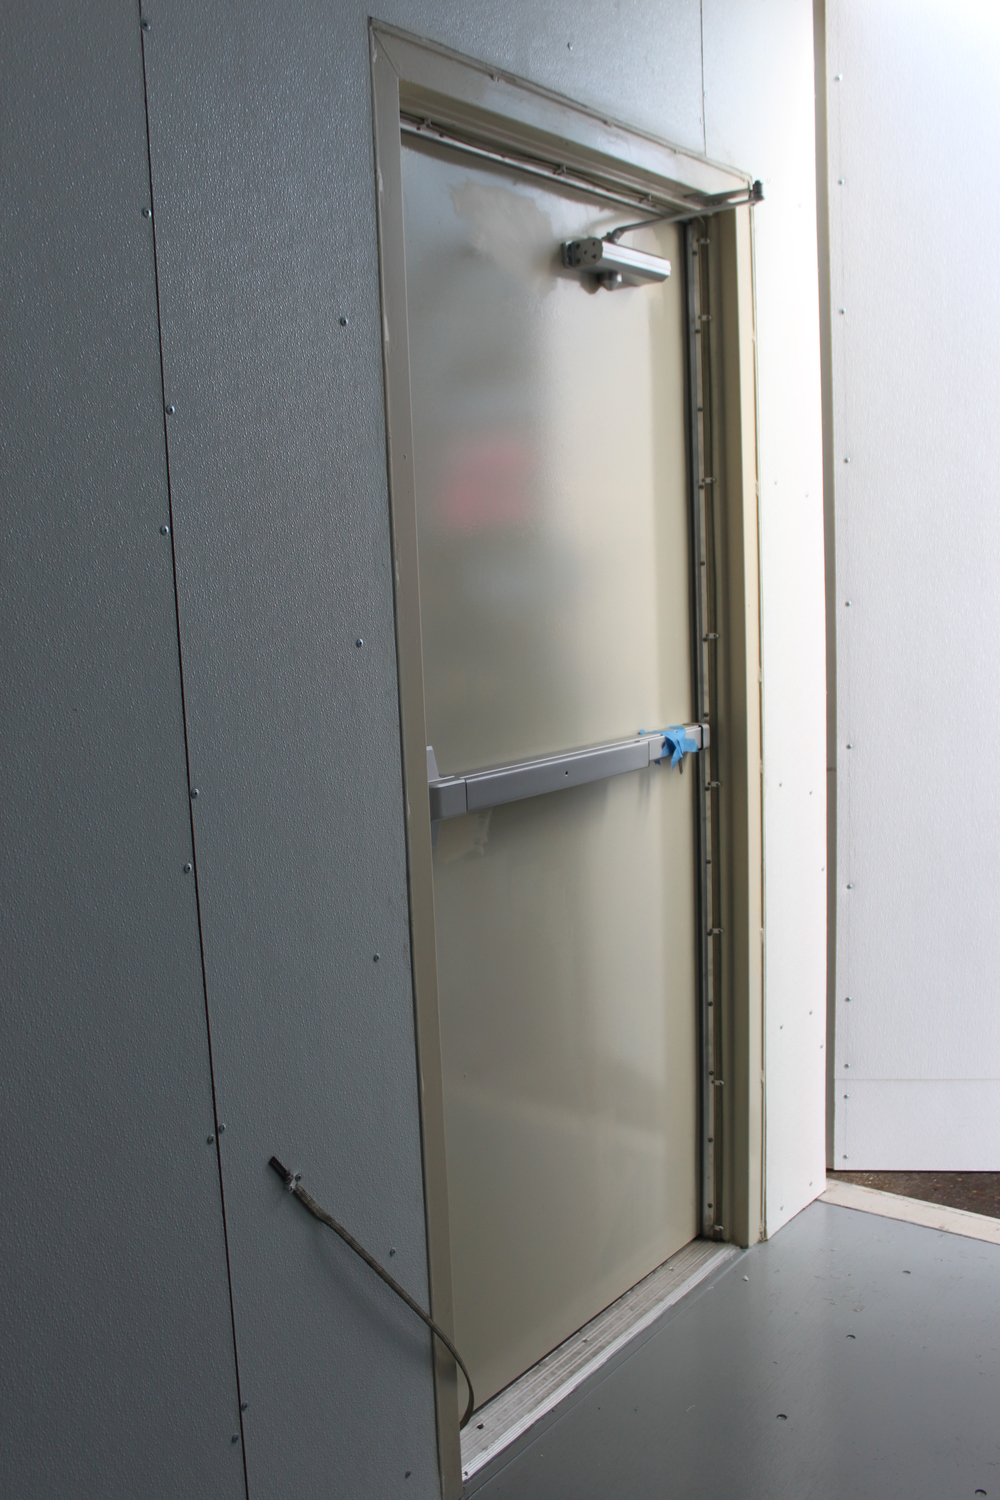 Man-door with panic bar (and keys taped to the panic bar)